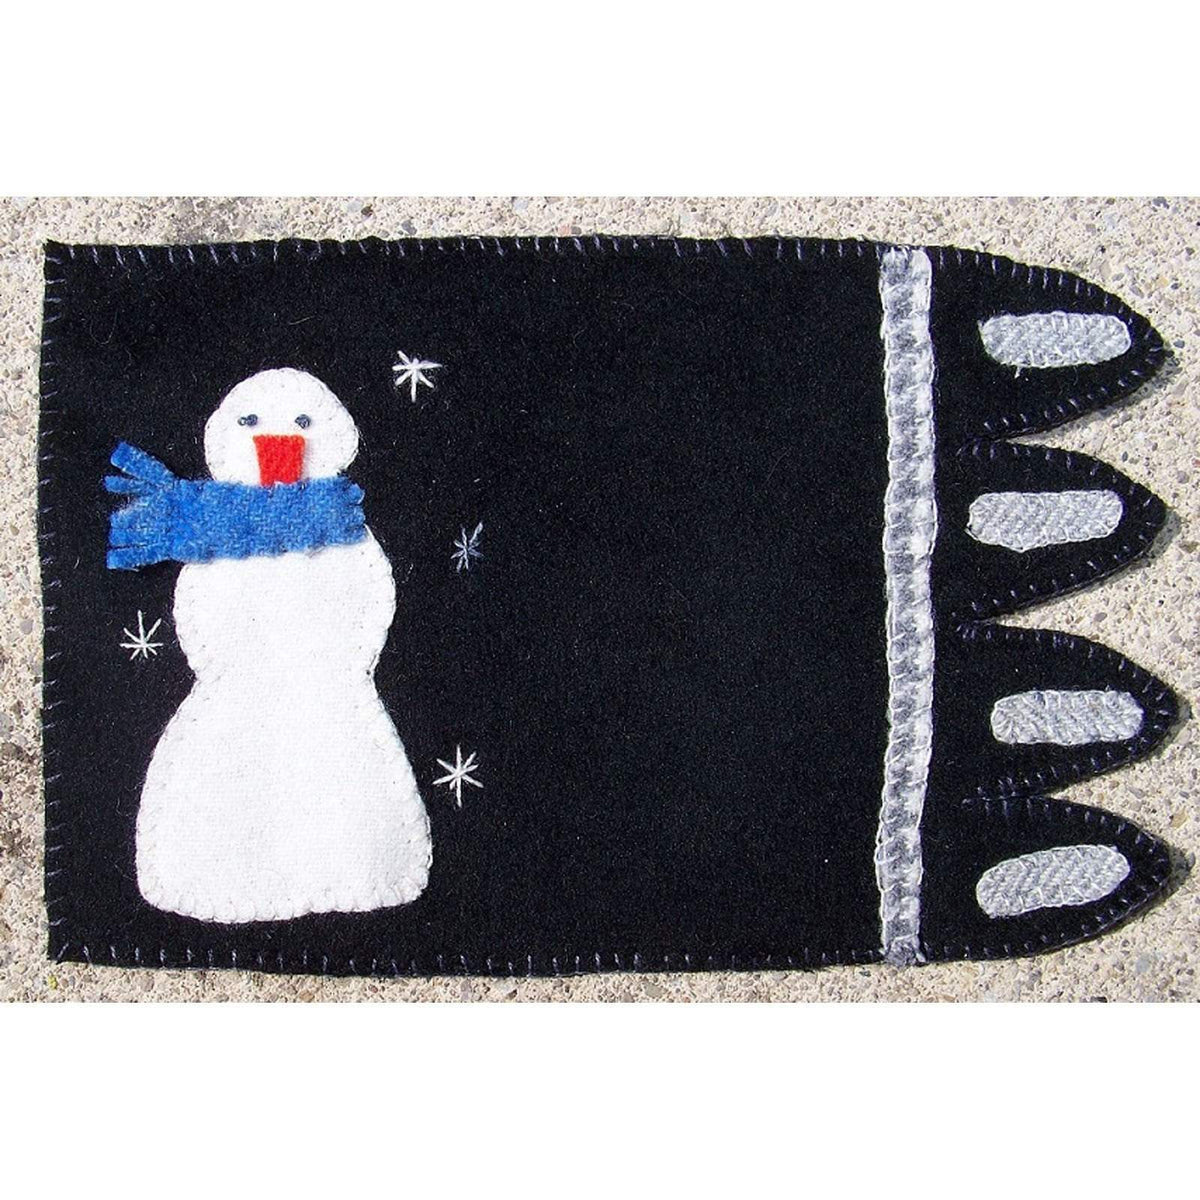 Snowman Mug Rug Kit Includes Wool And Glue In The Patch Designs